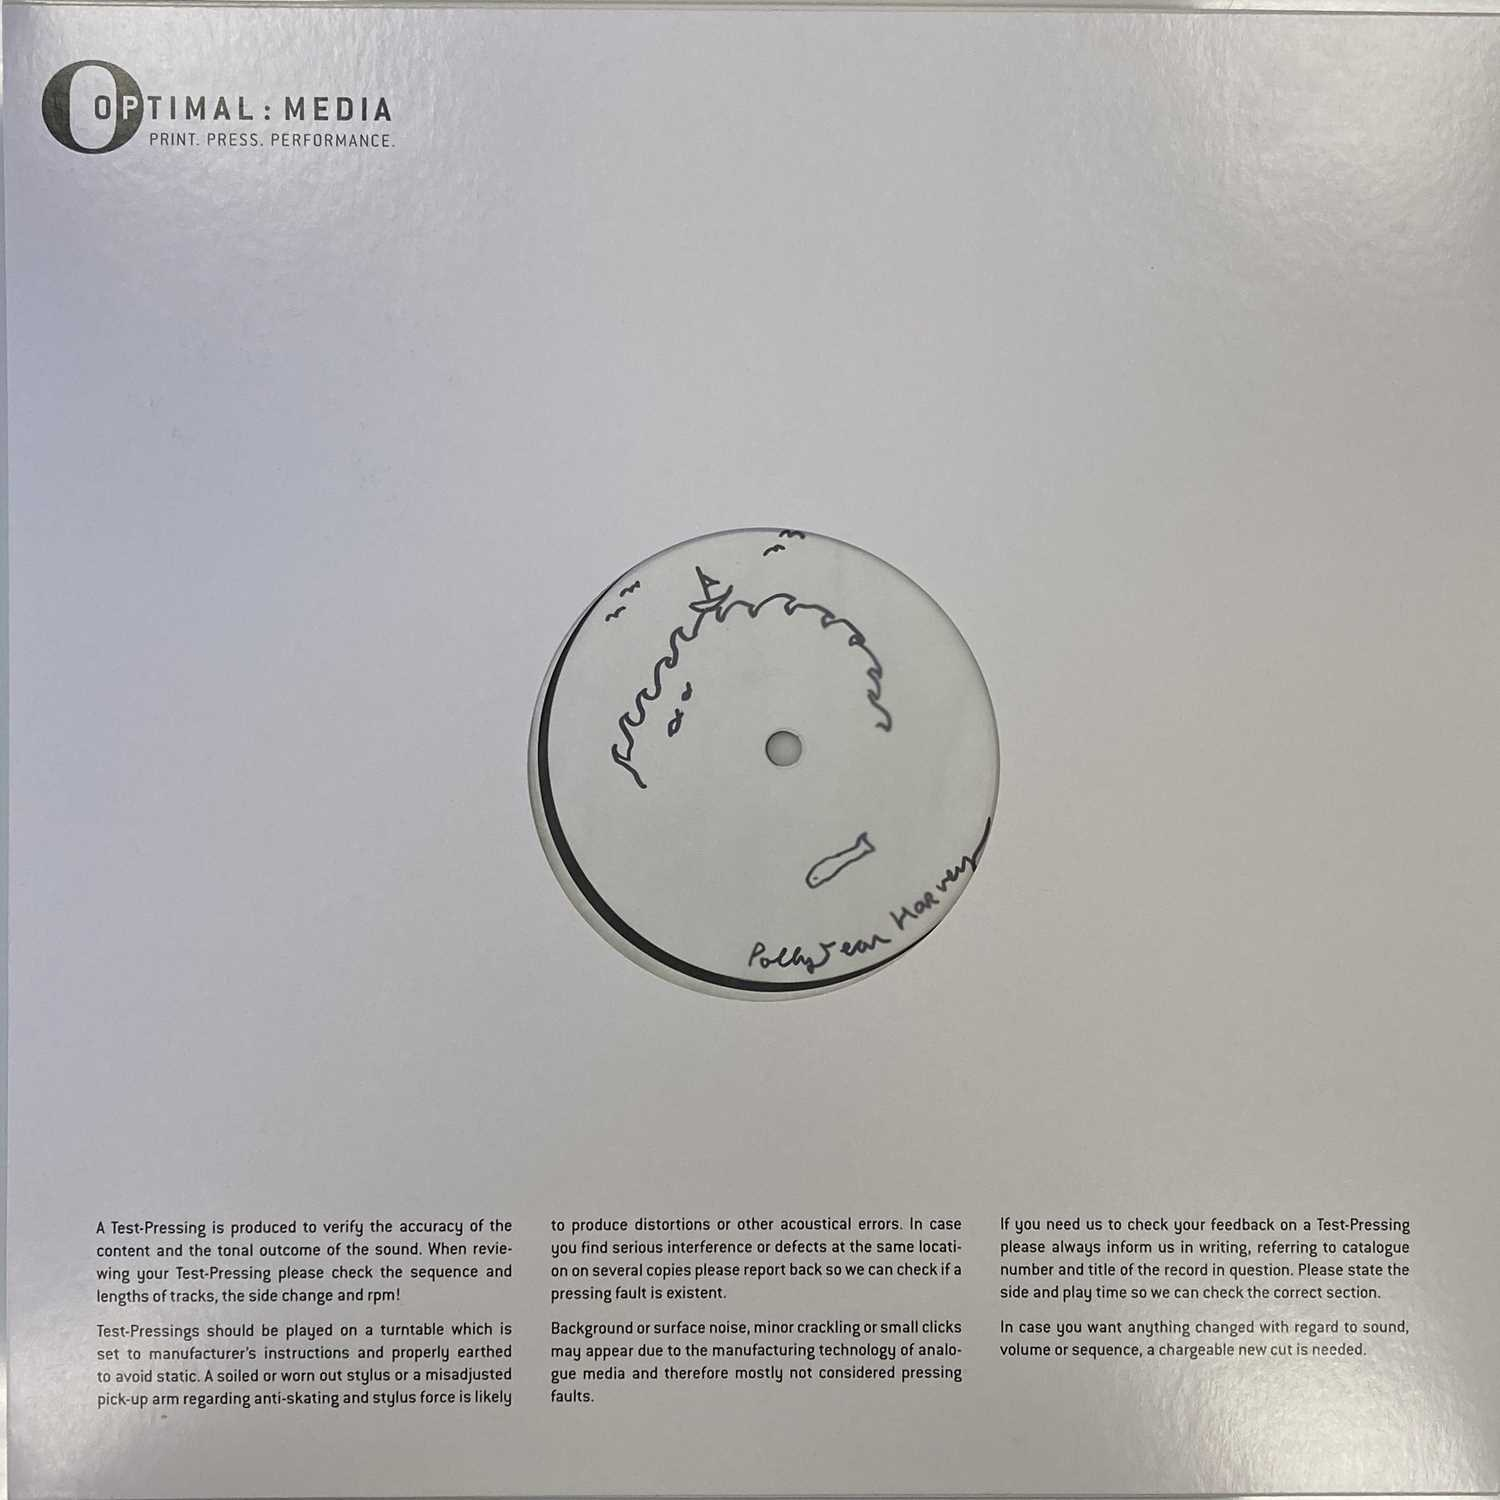 PJ HARVEY - STORIES FROM THE CITY, STORIES FROM THE SEA LP (SIGNED & ILLUSTRATED WHITE LABEL TEST PR - Image 2 of 5